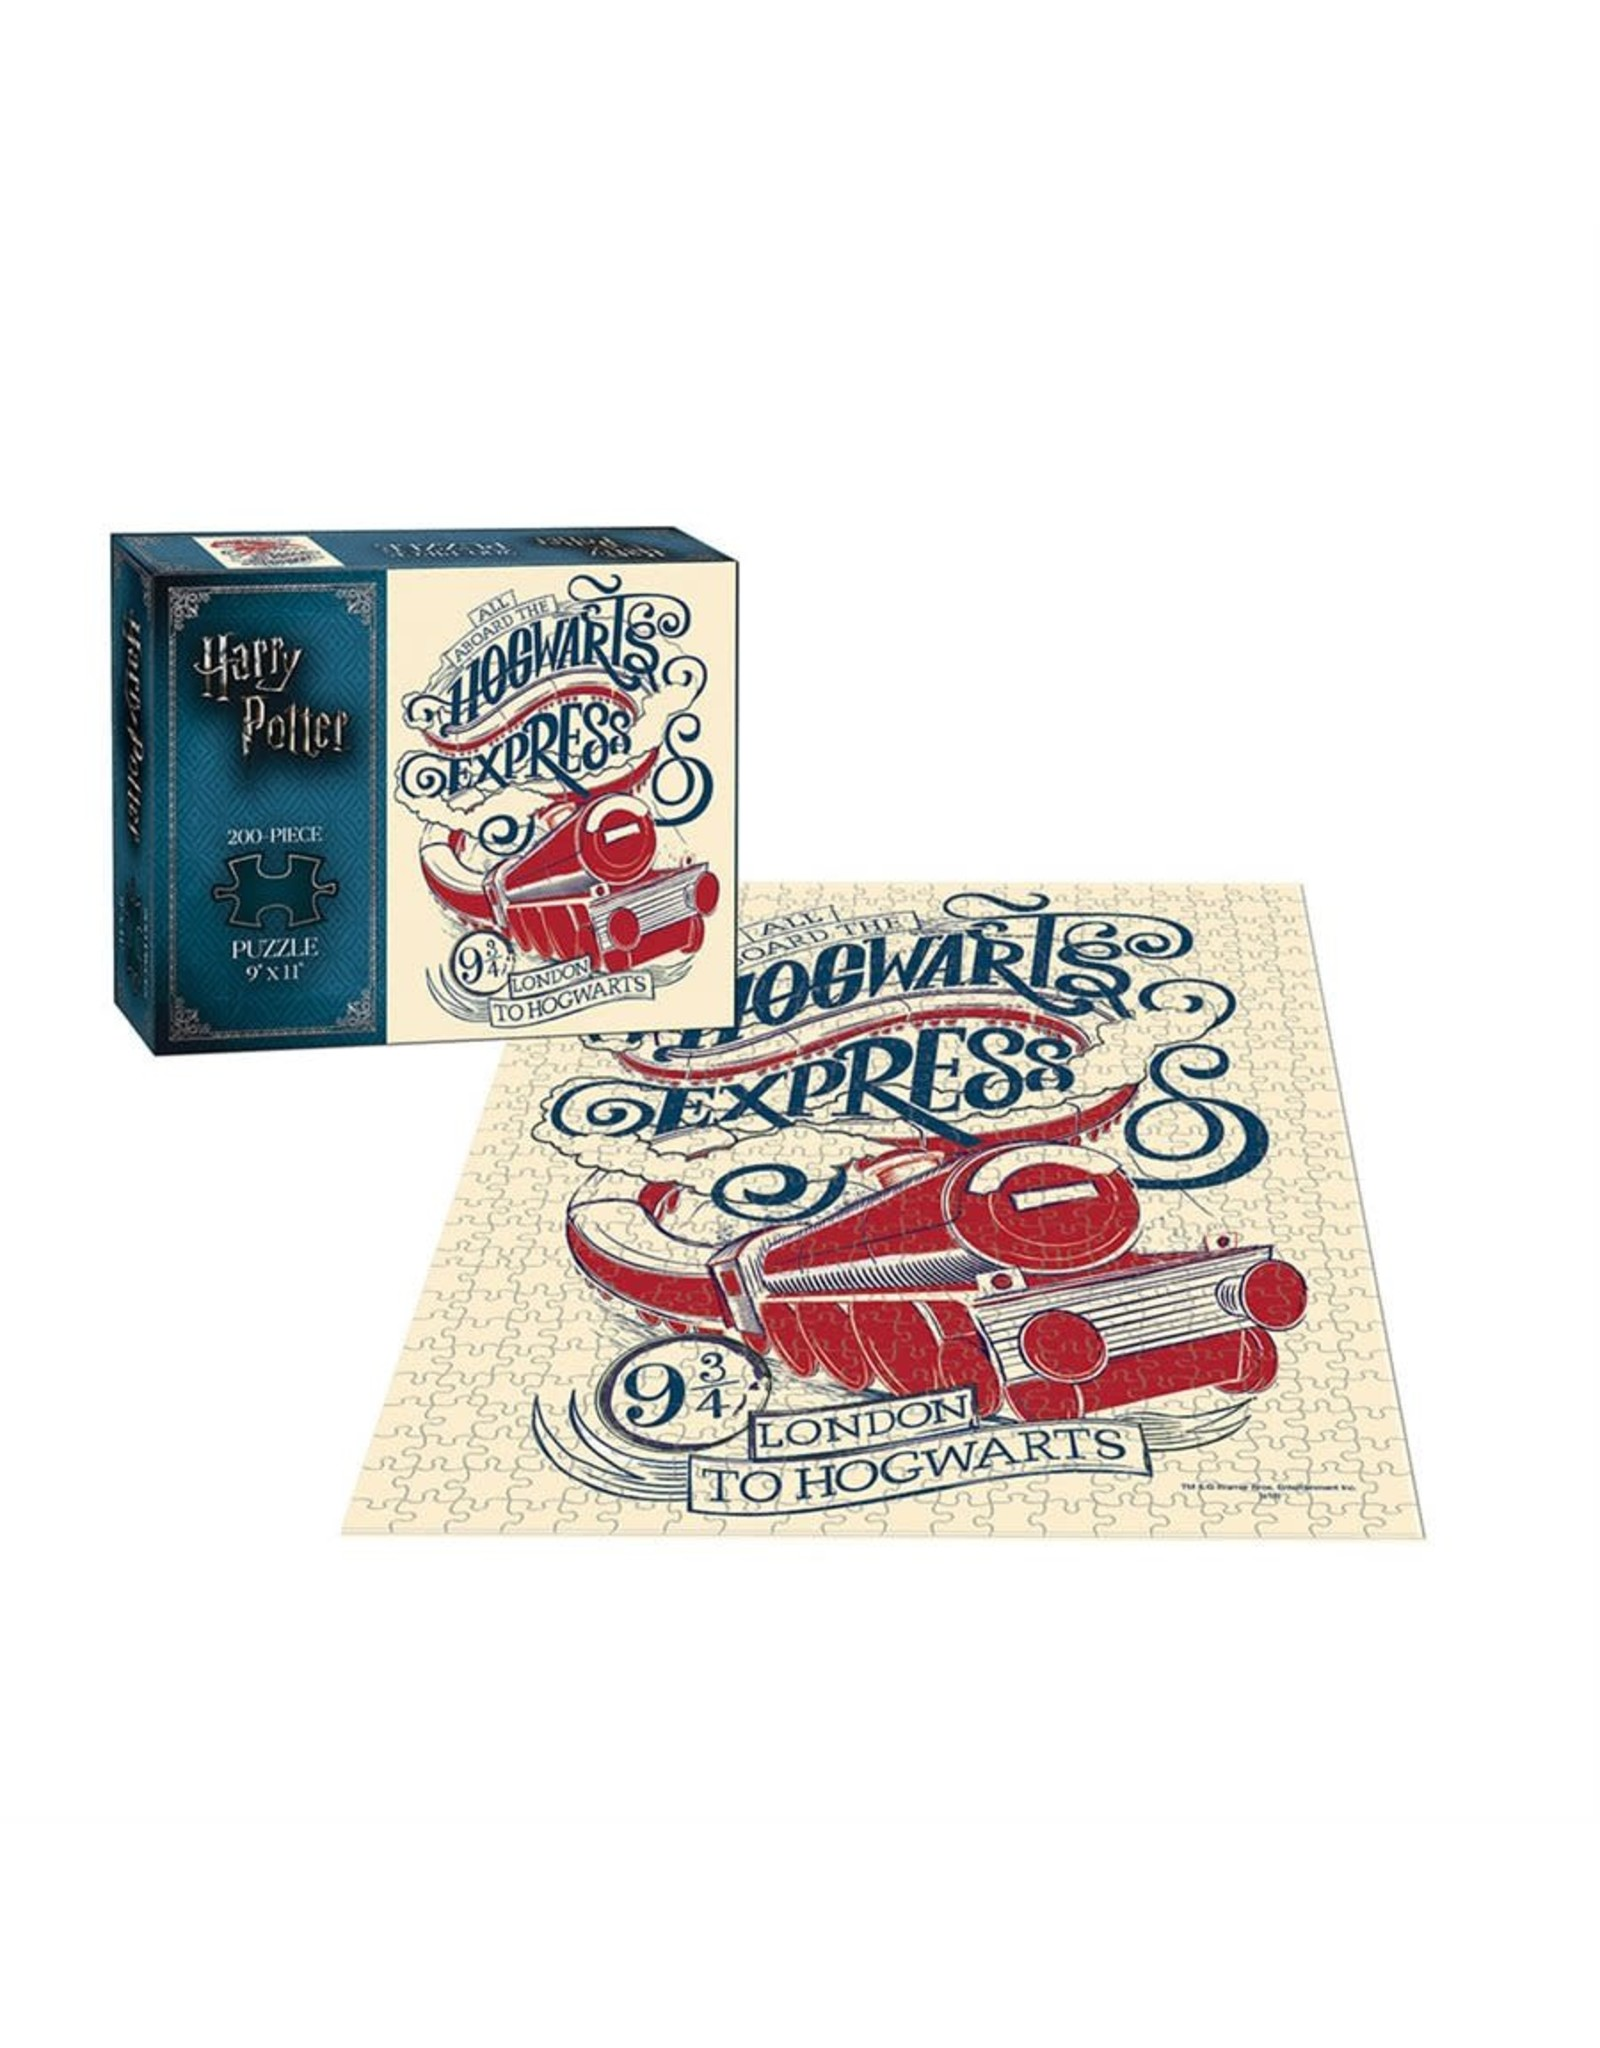 Usaopoly Puzzle: 200 Harry Potter Hogwarts Express